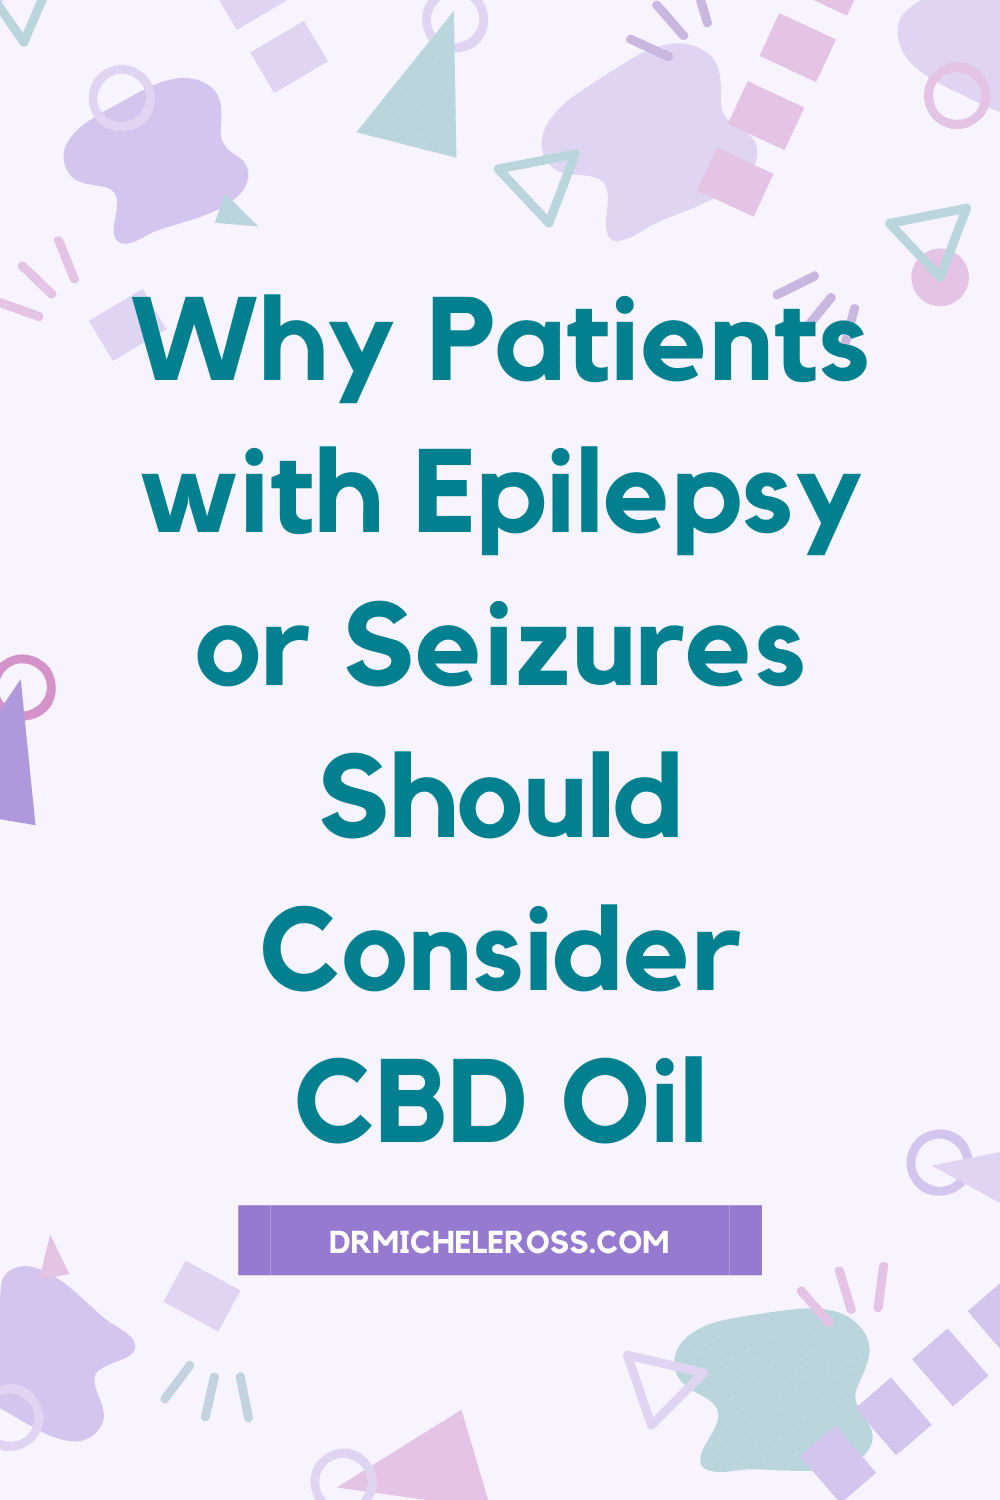 Why Patients With Epilepsy or Seizures Should Consider CBD Oil